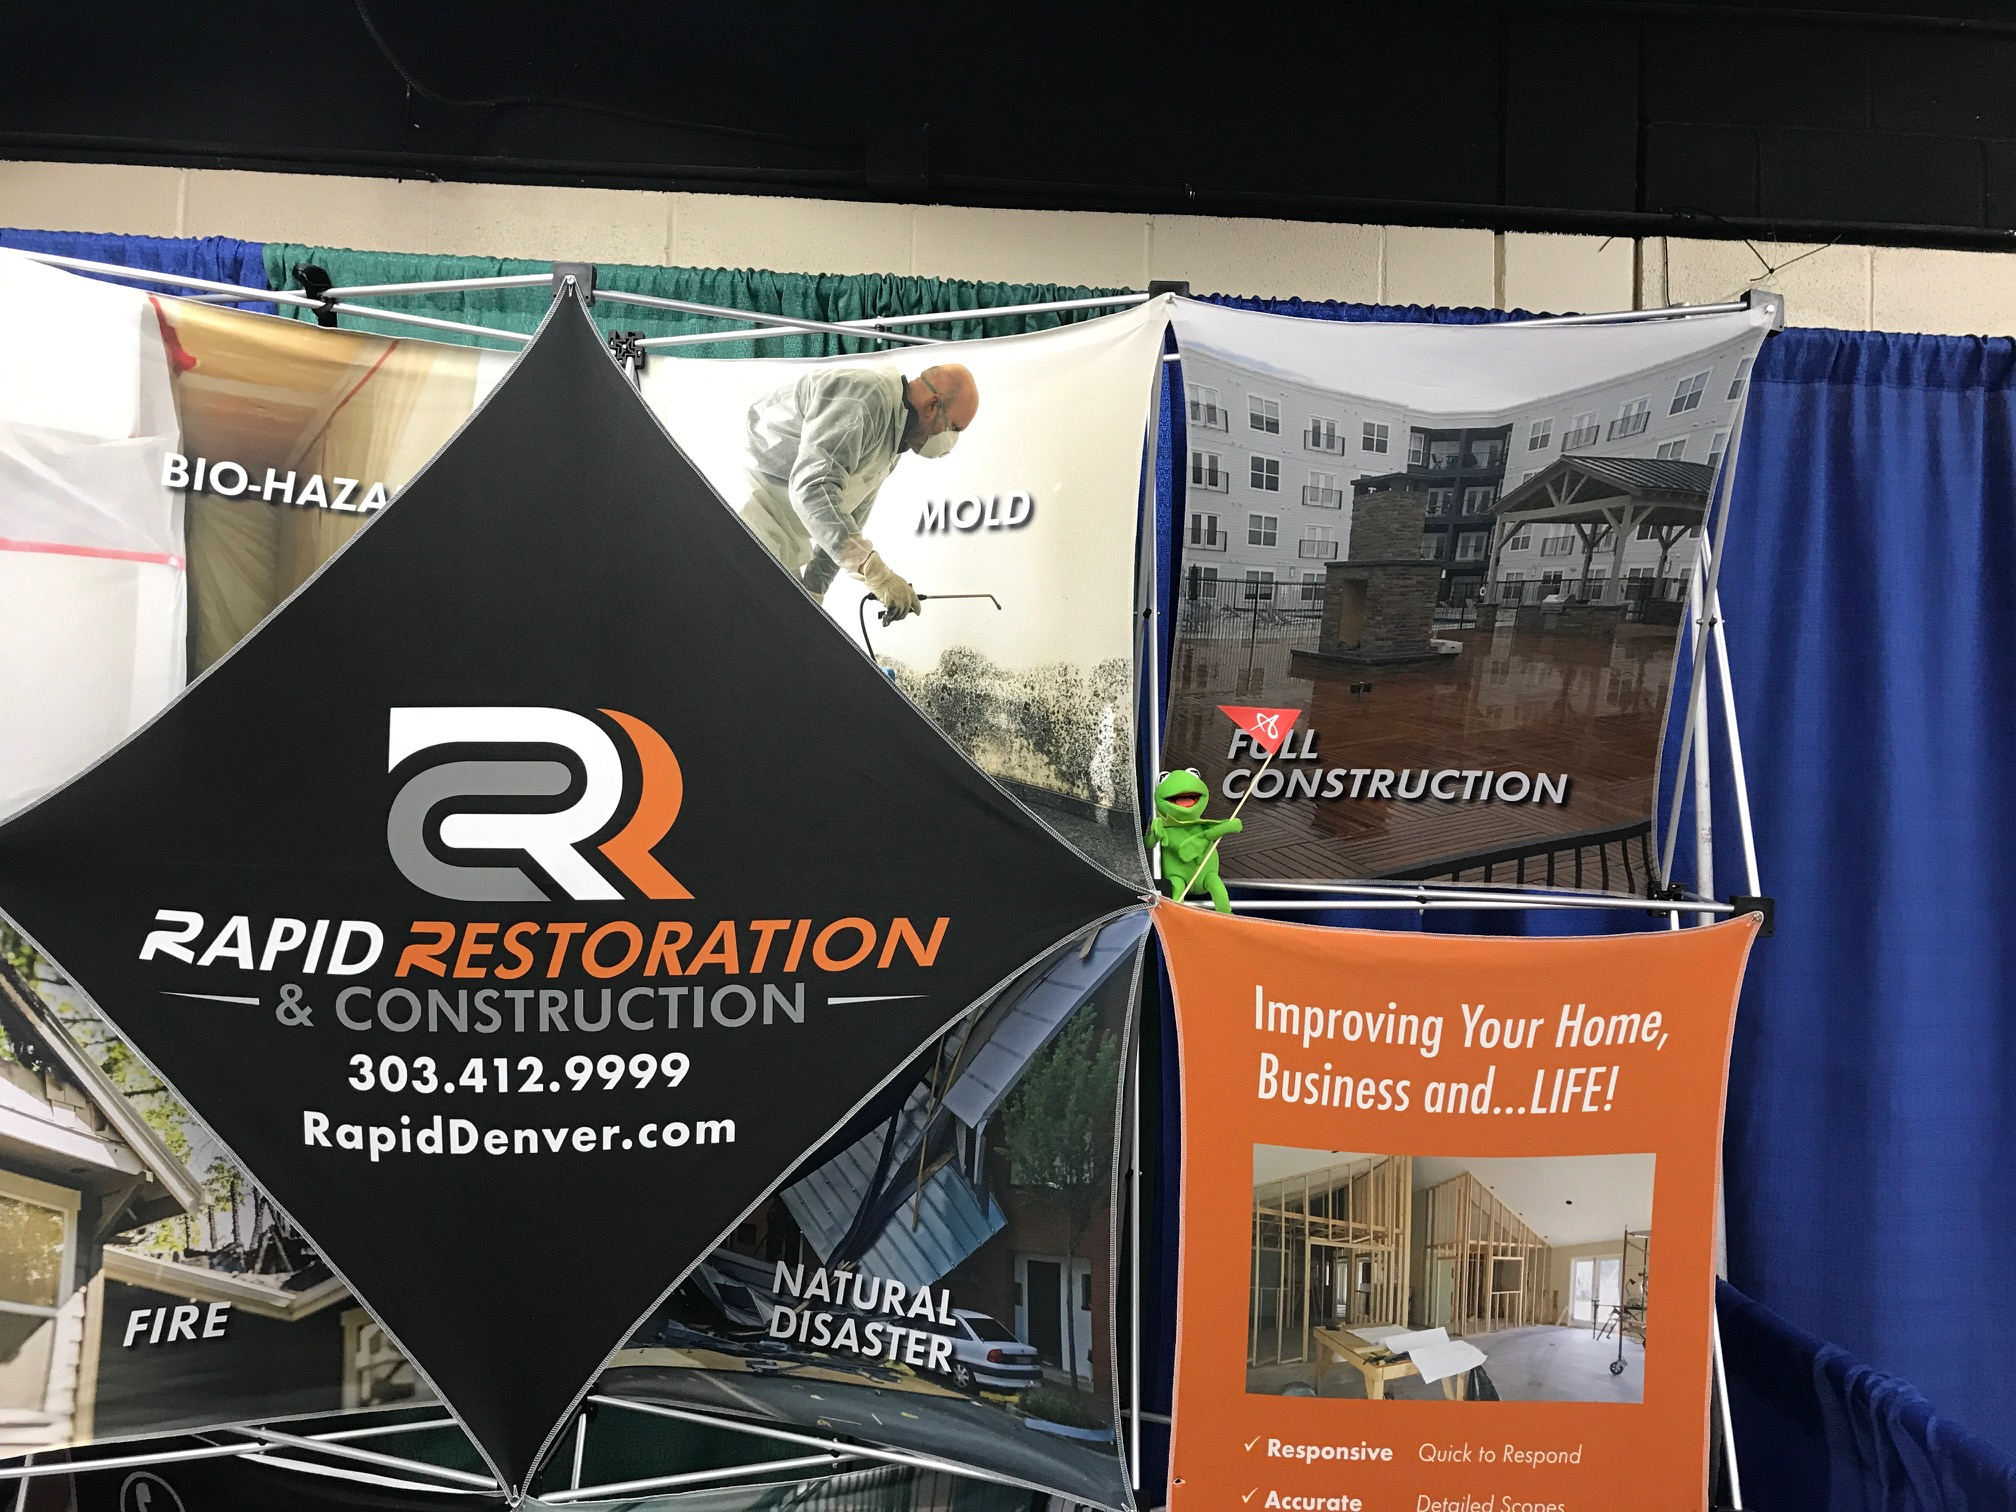 A selection of trade show banners.